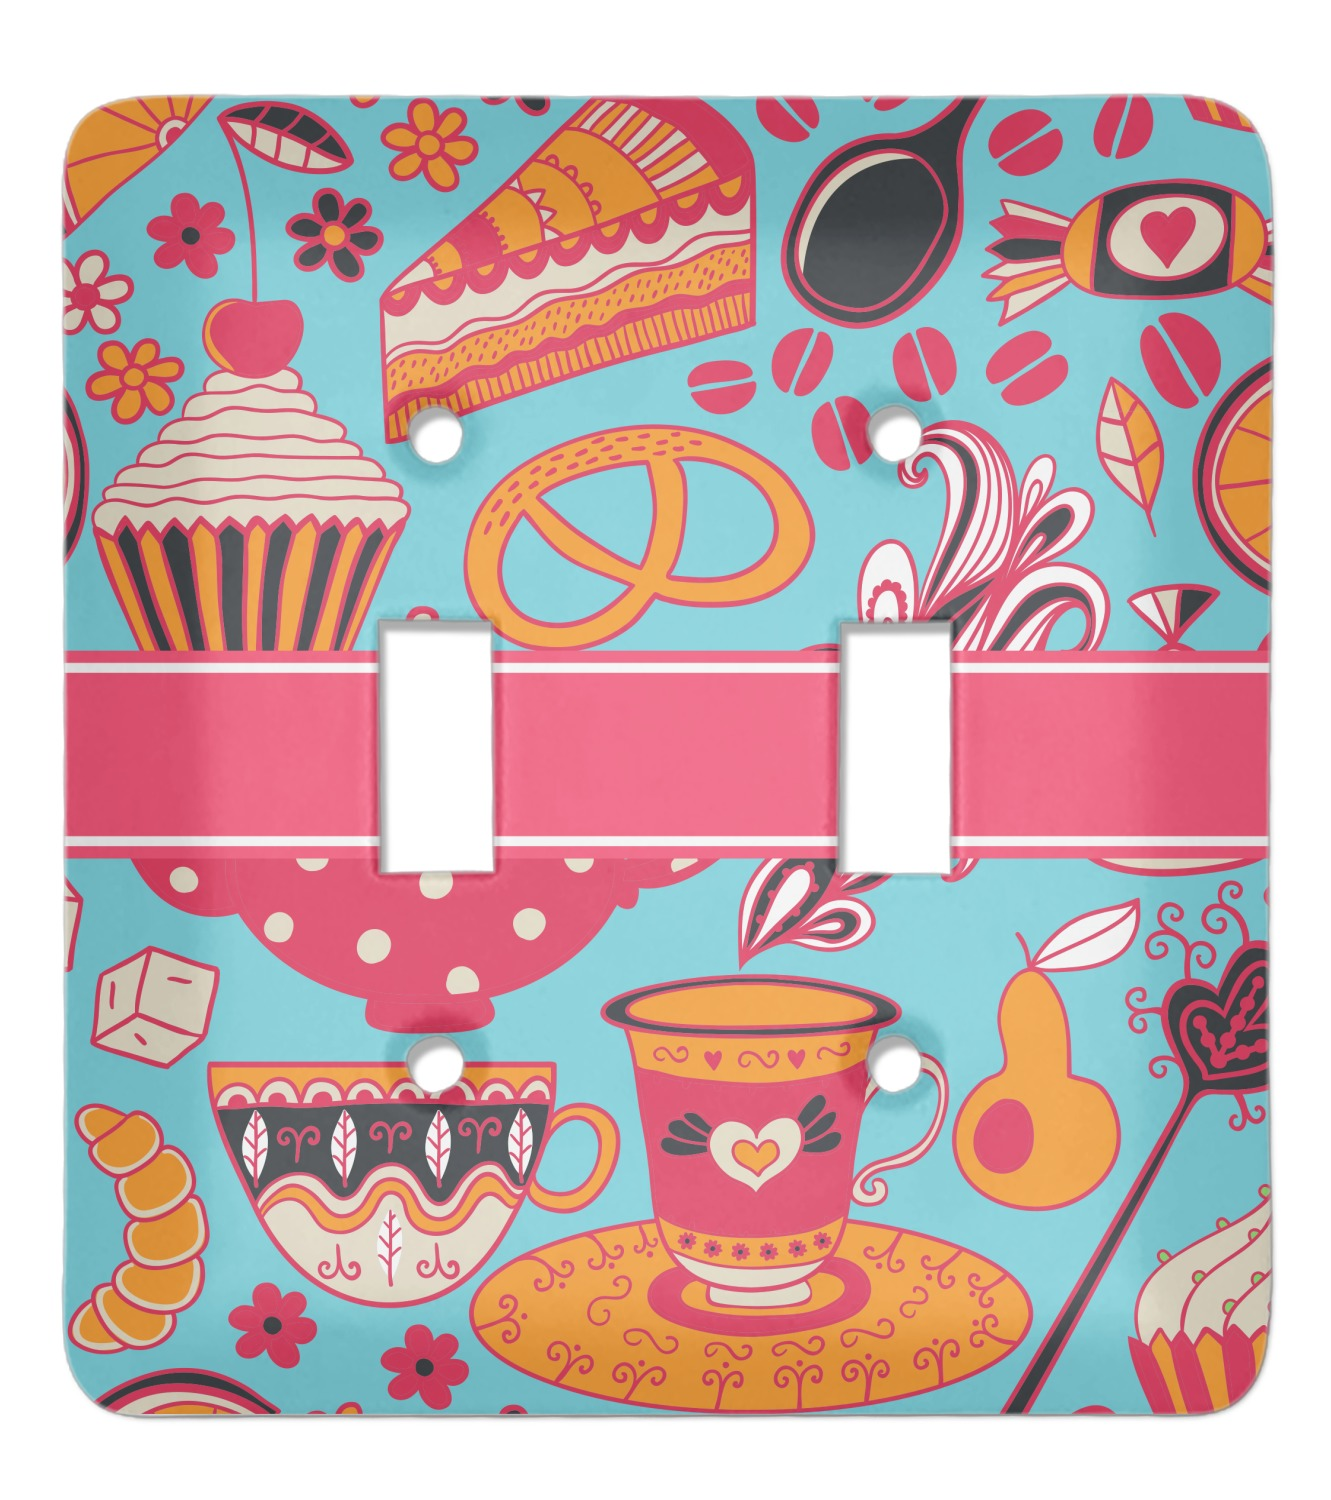 Dessert Coffee Light Switch Cover 2 Toggle Plate Personalized